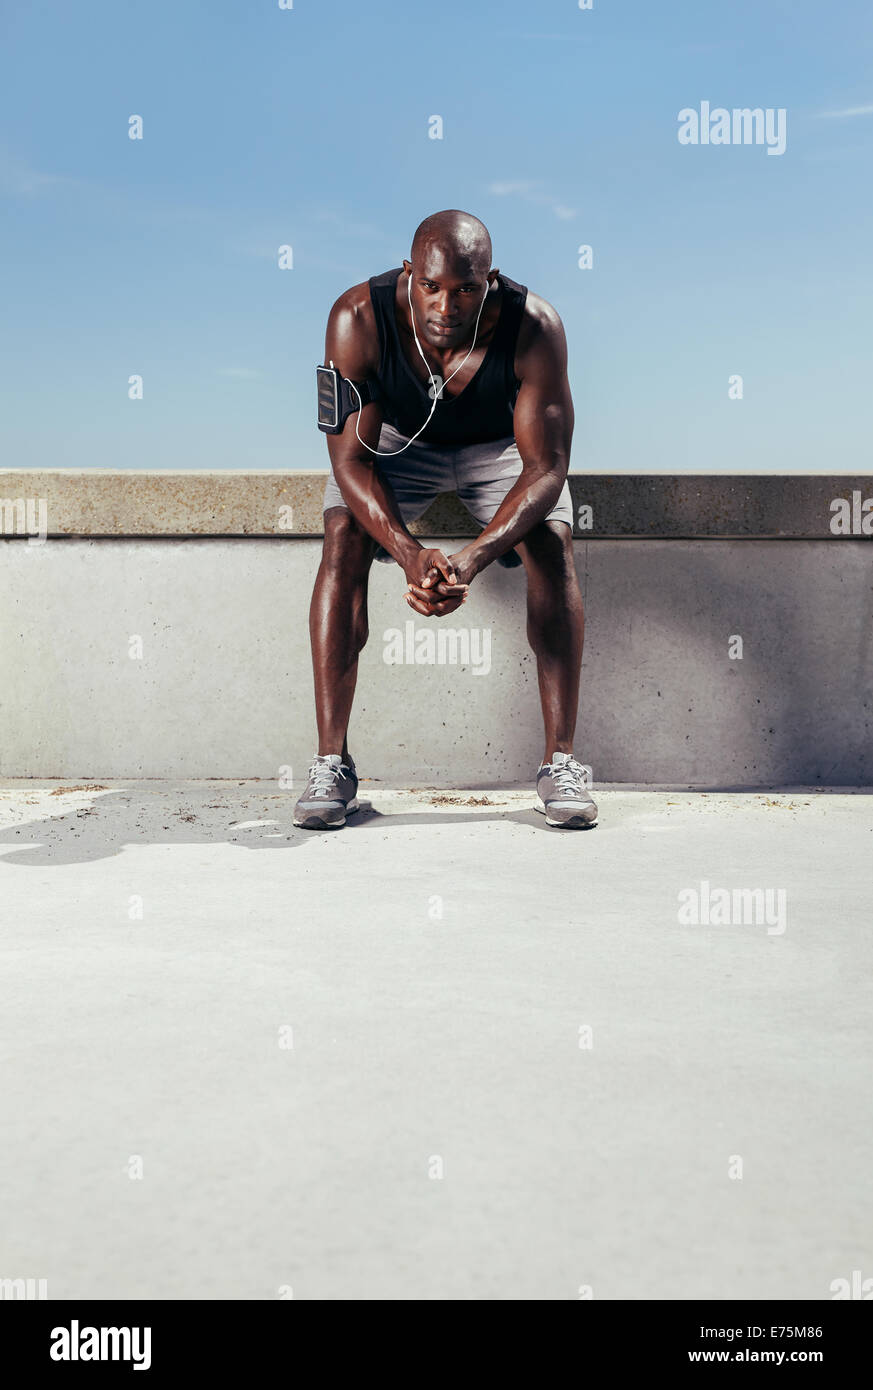 Portrait of a exhausted runner sitting outdoors. Muscular and fit young athlete relaxing after his fitness training. - Stock Image